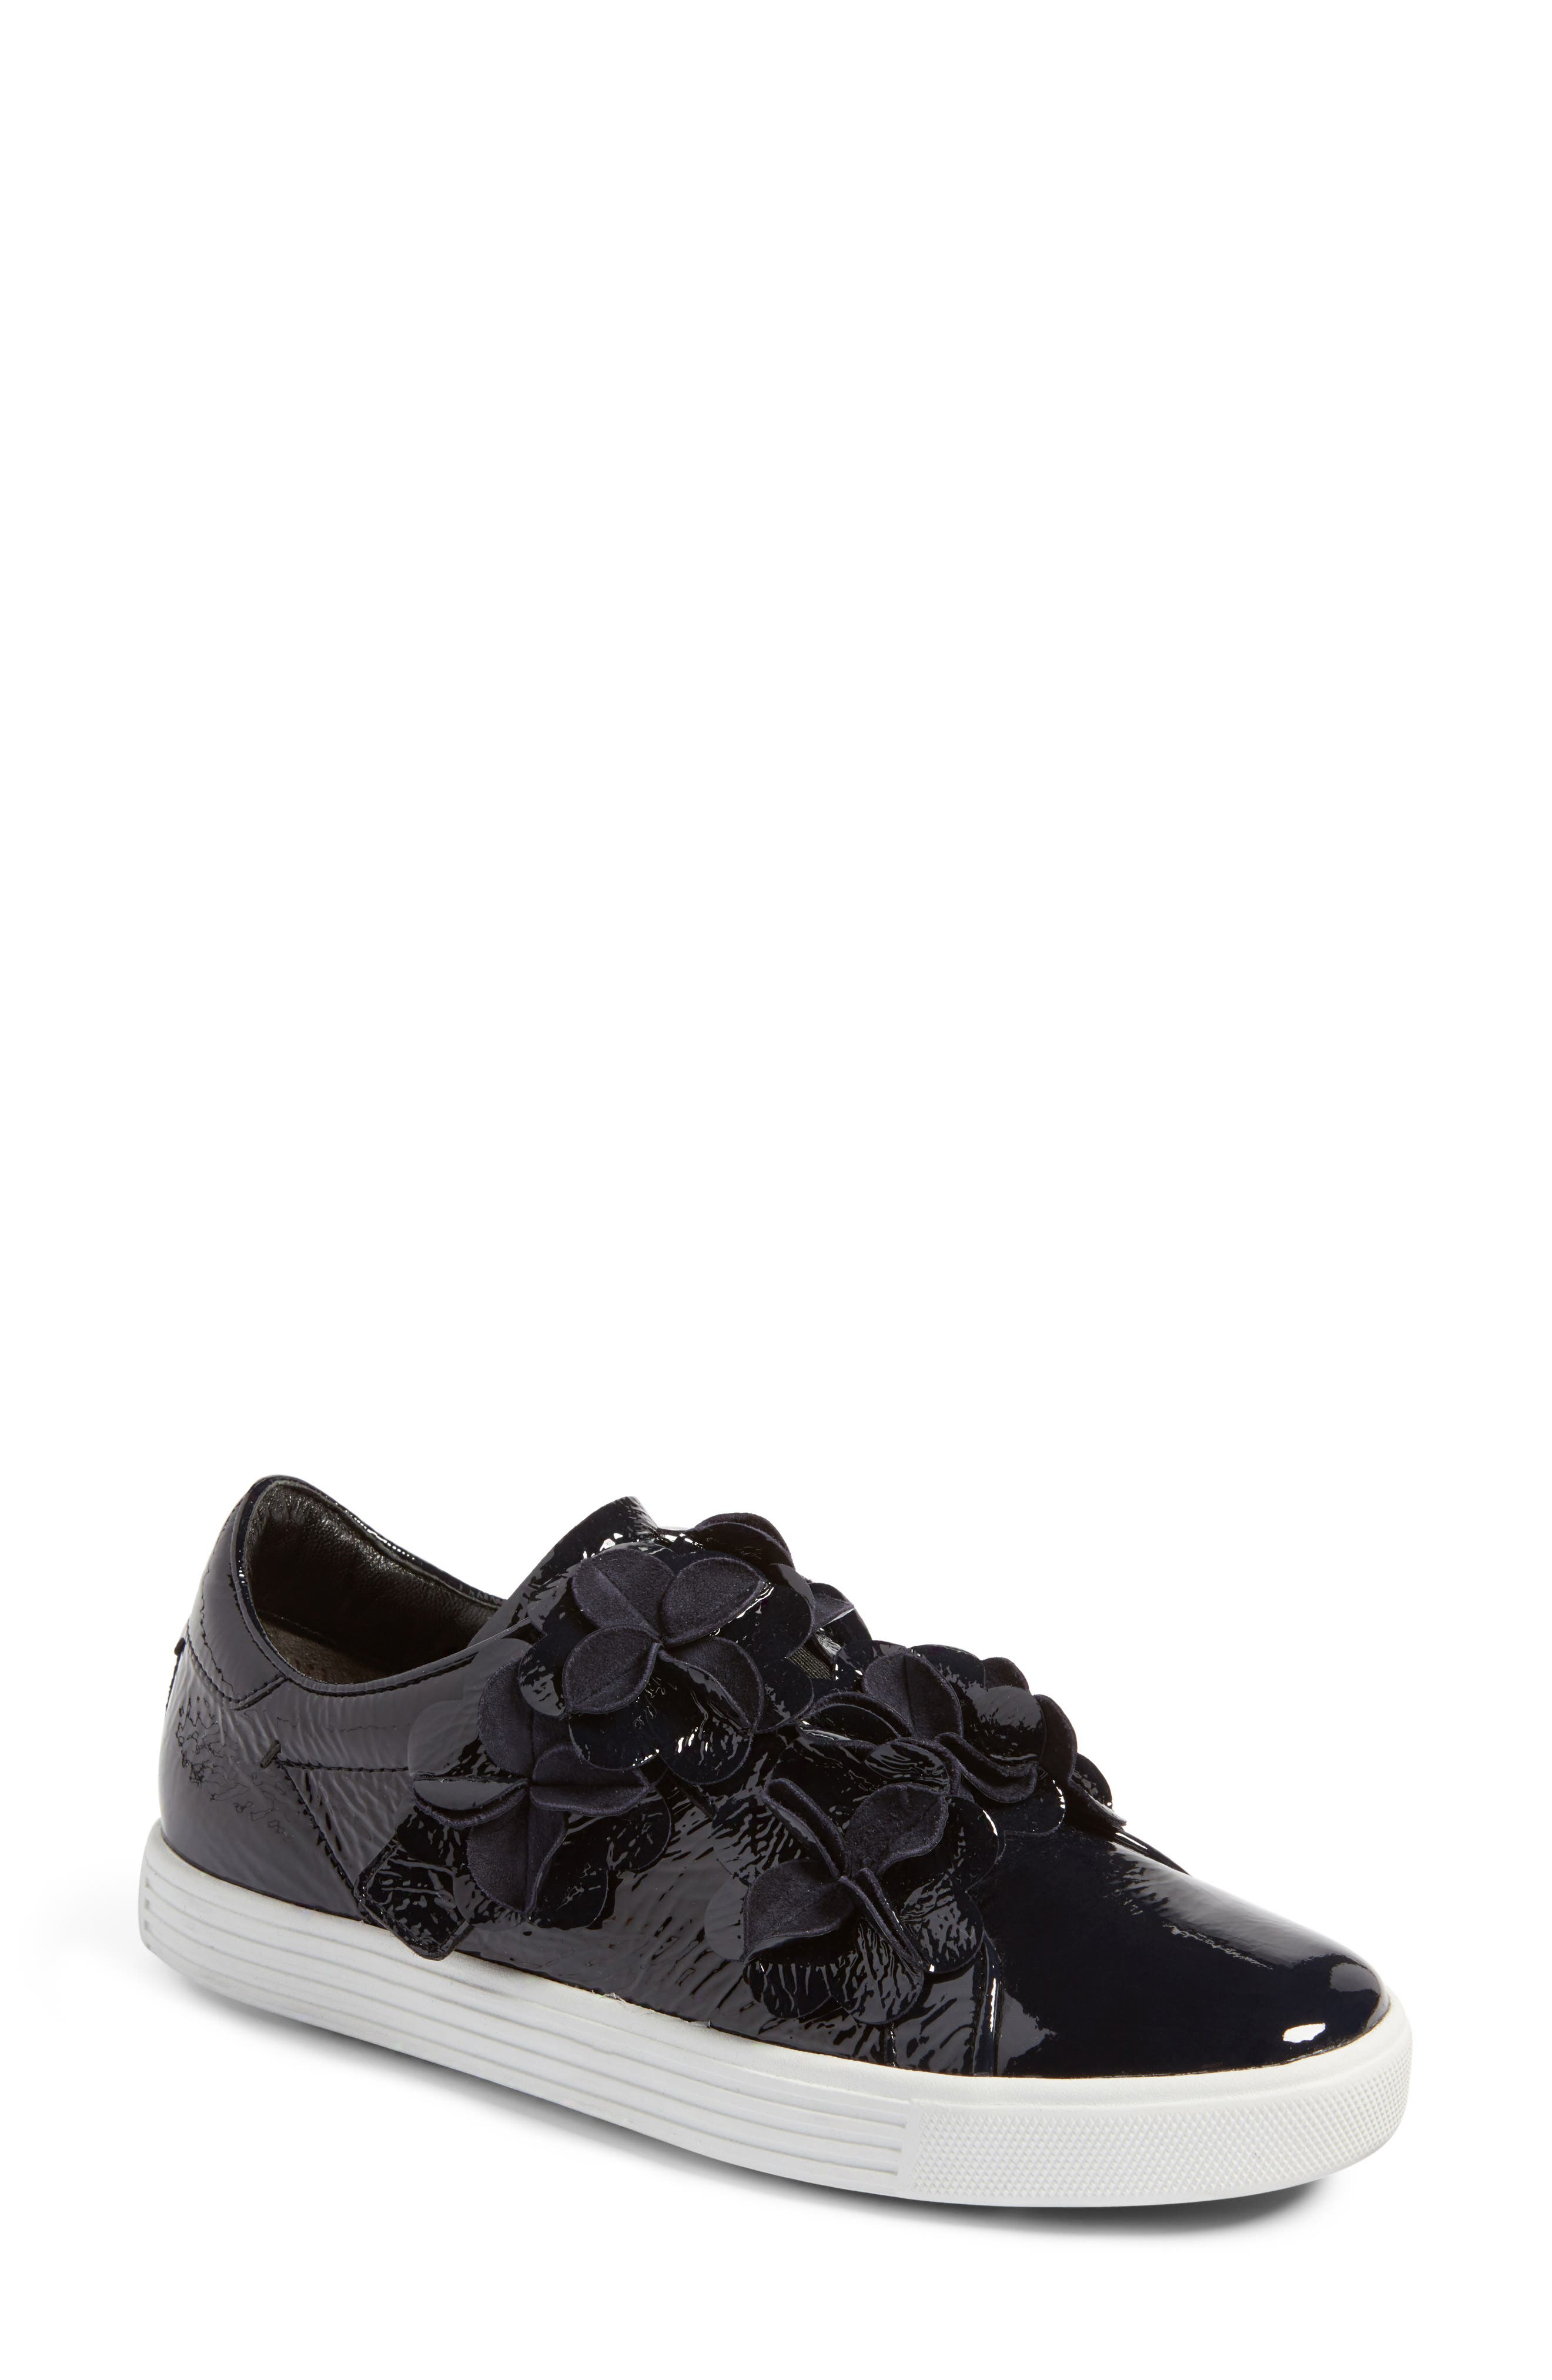 Kennel & Schmenger Town Floral Embellished Sneaker,                             Main thumbnail 1, color,                             Dark Navy